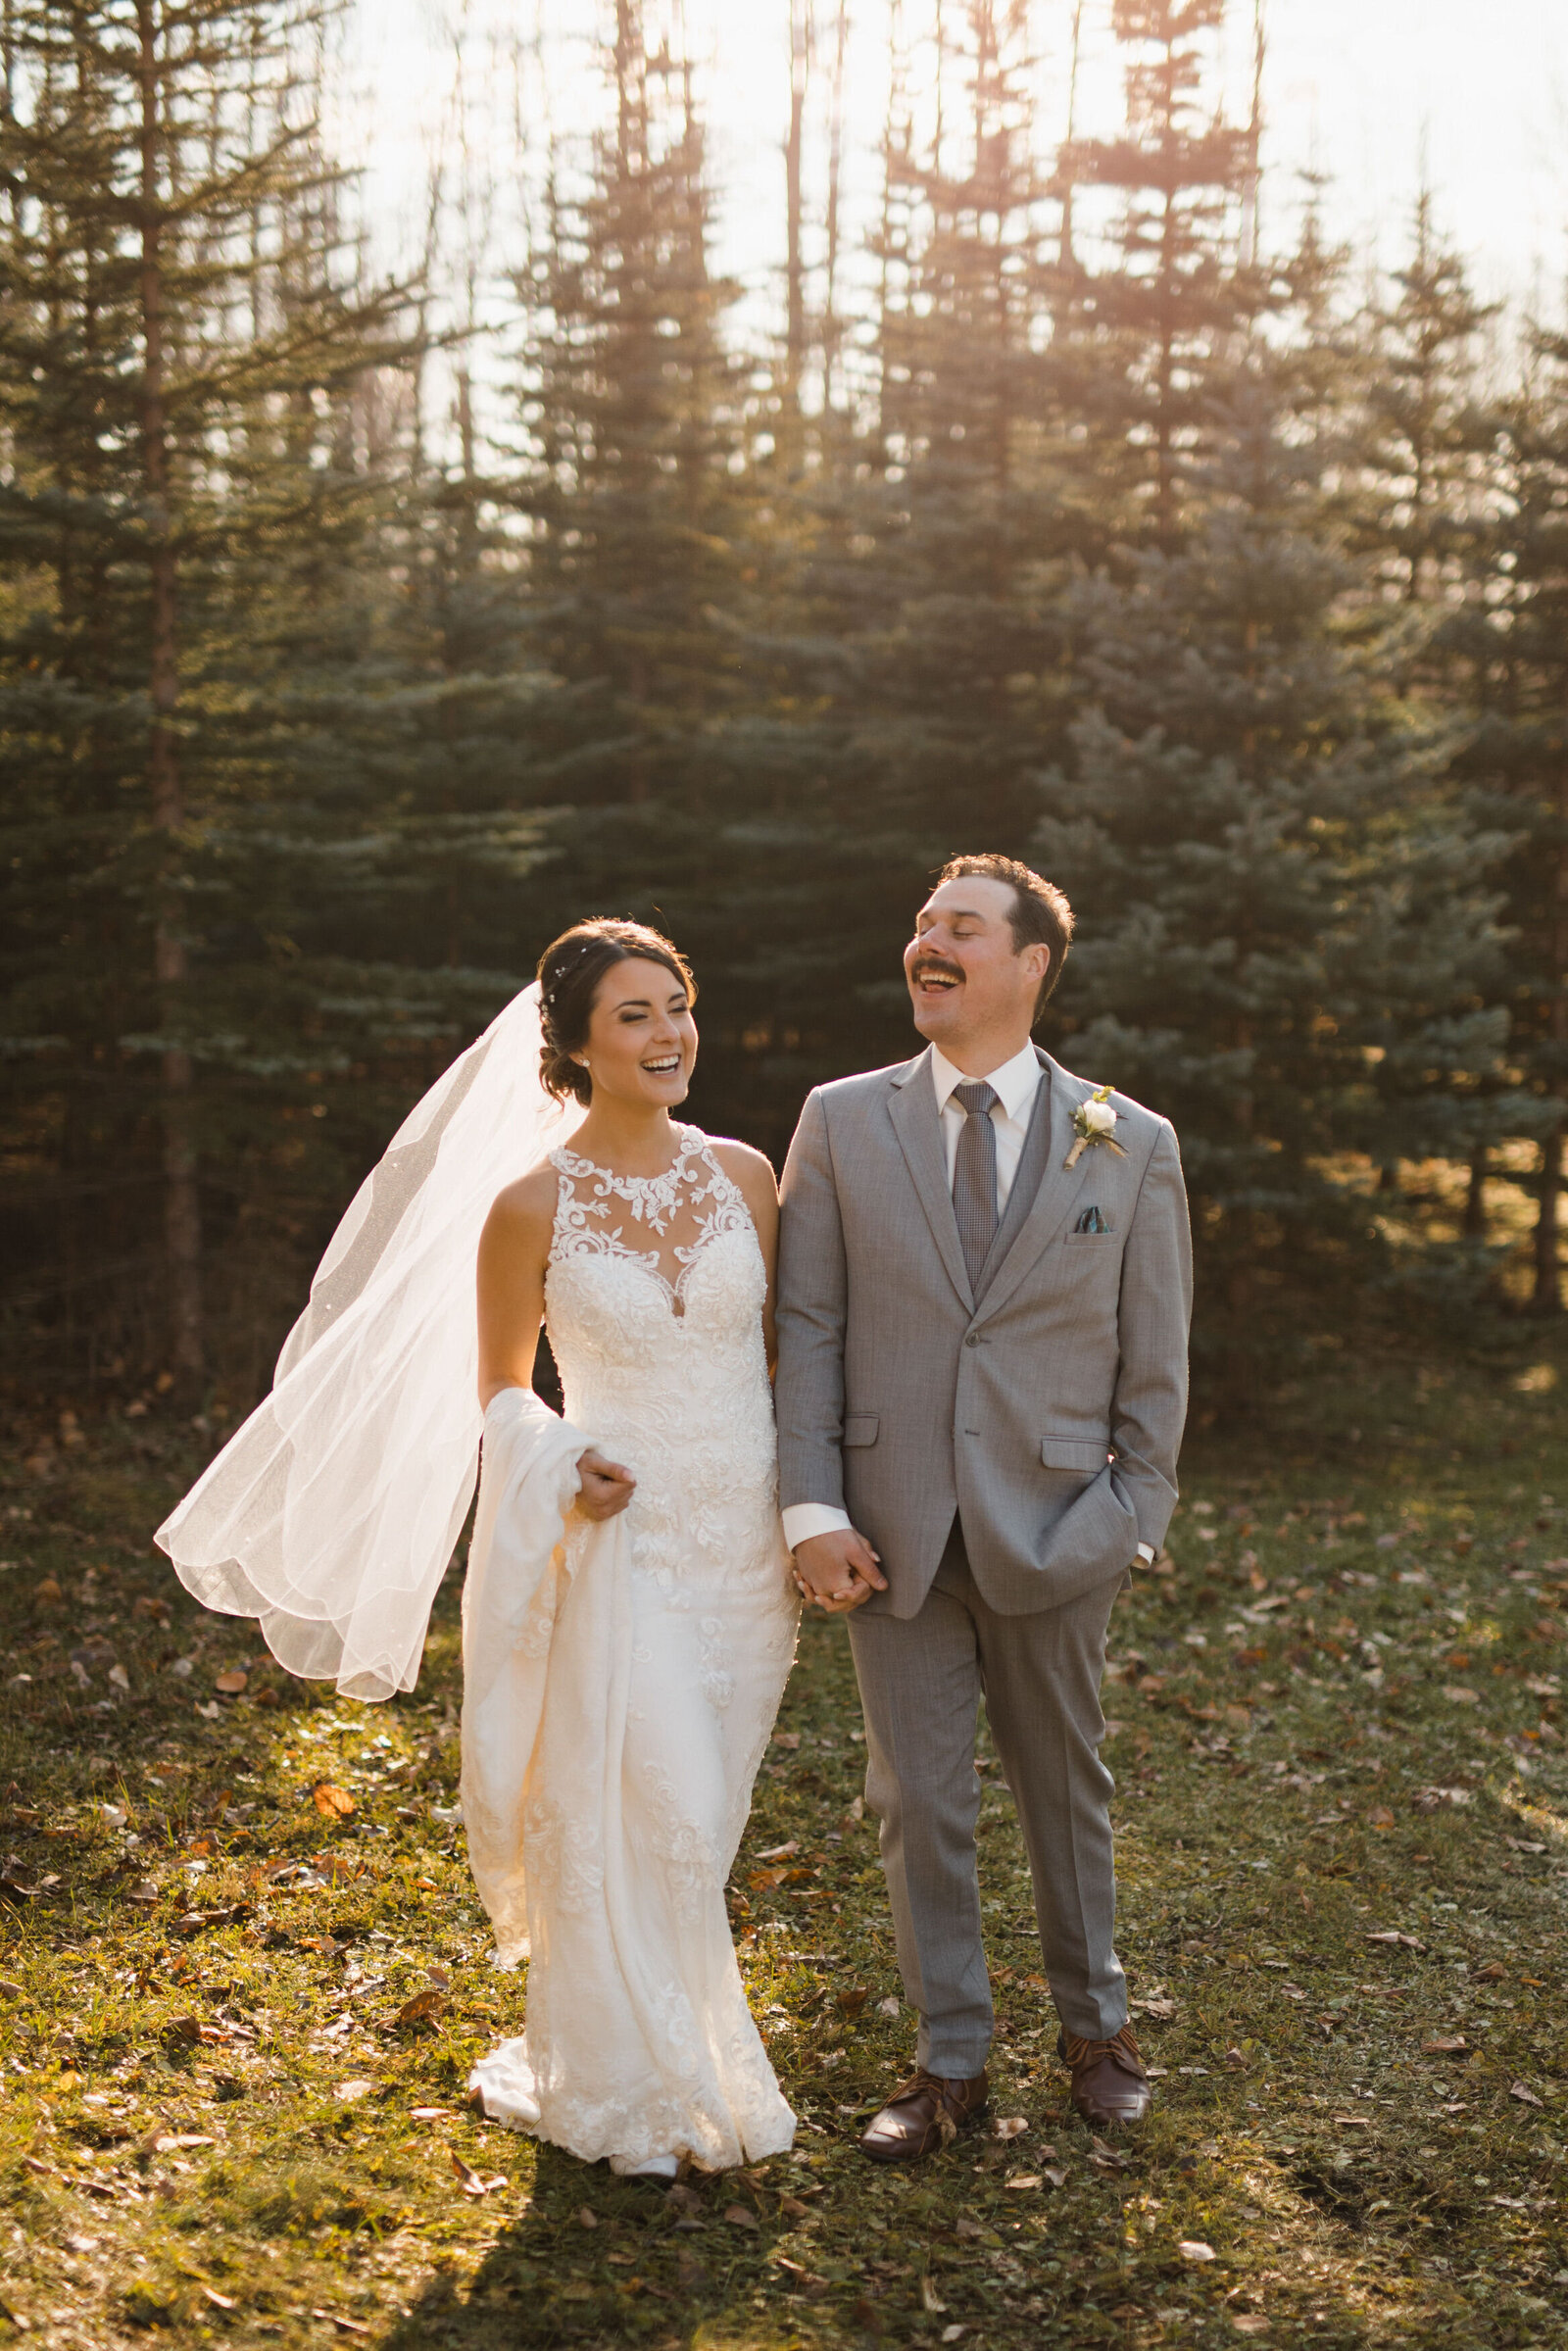 banff.wedding.photographer-6860